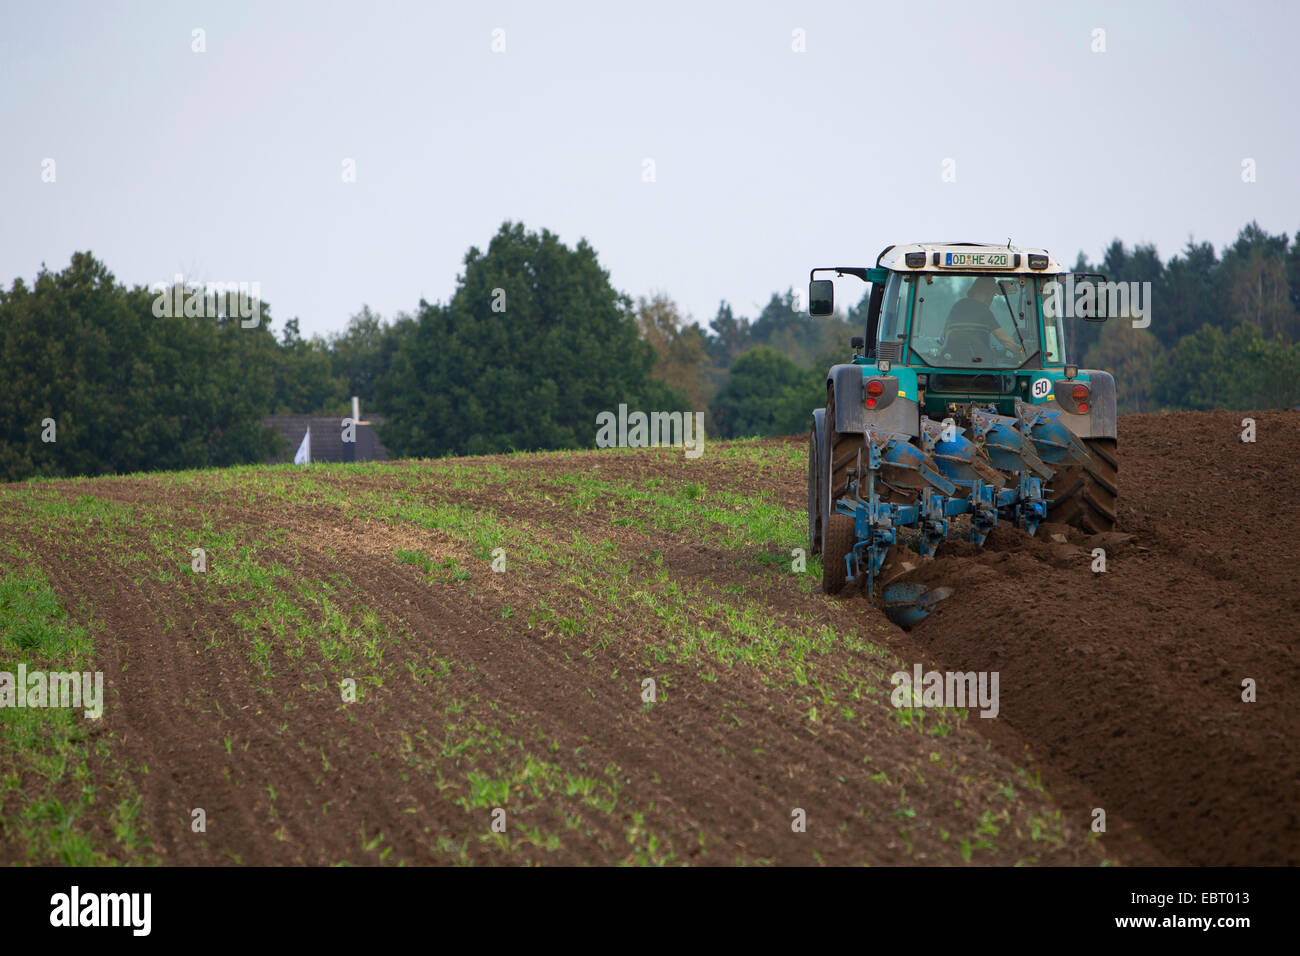 tractor plowing an acre, Germany, Schleswig-Holstein - Stock Image